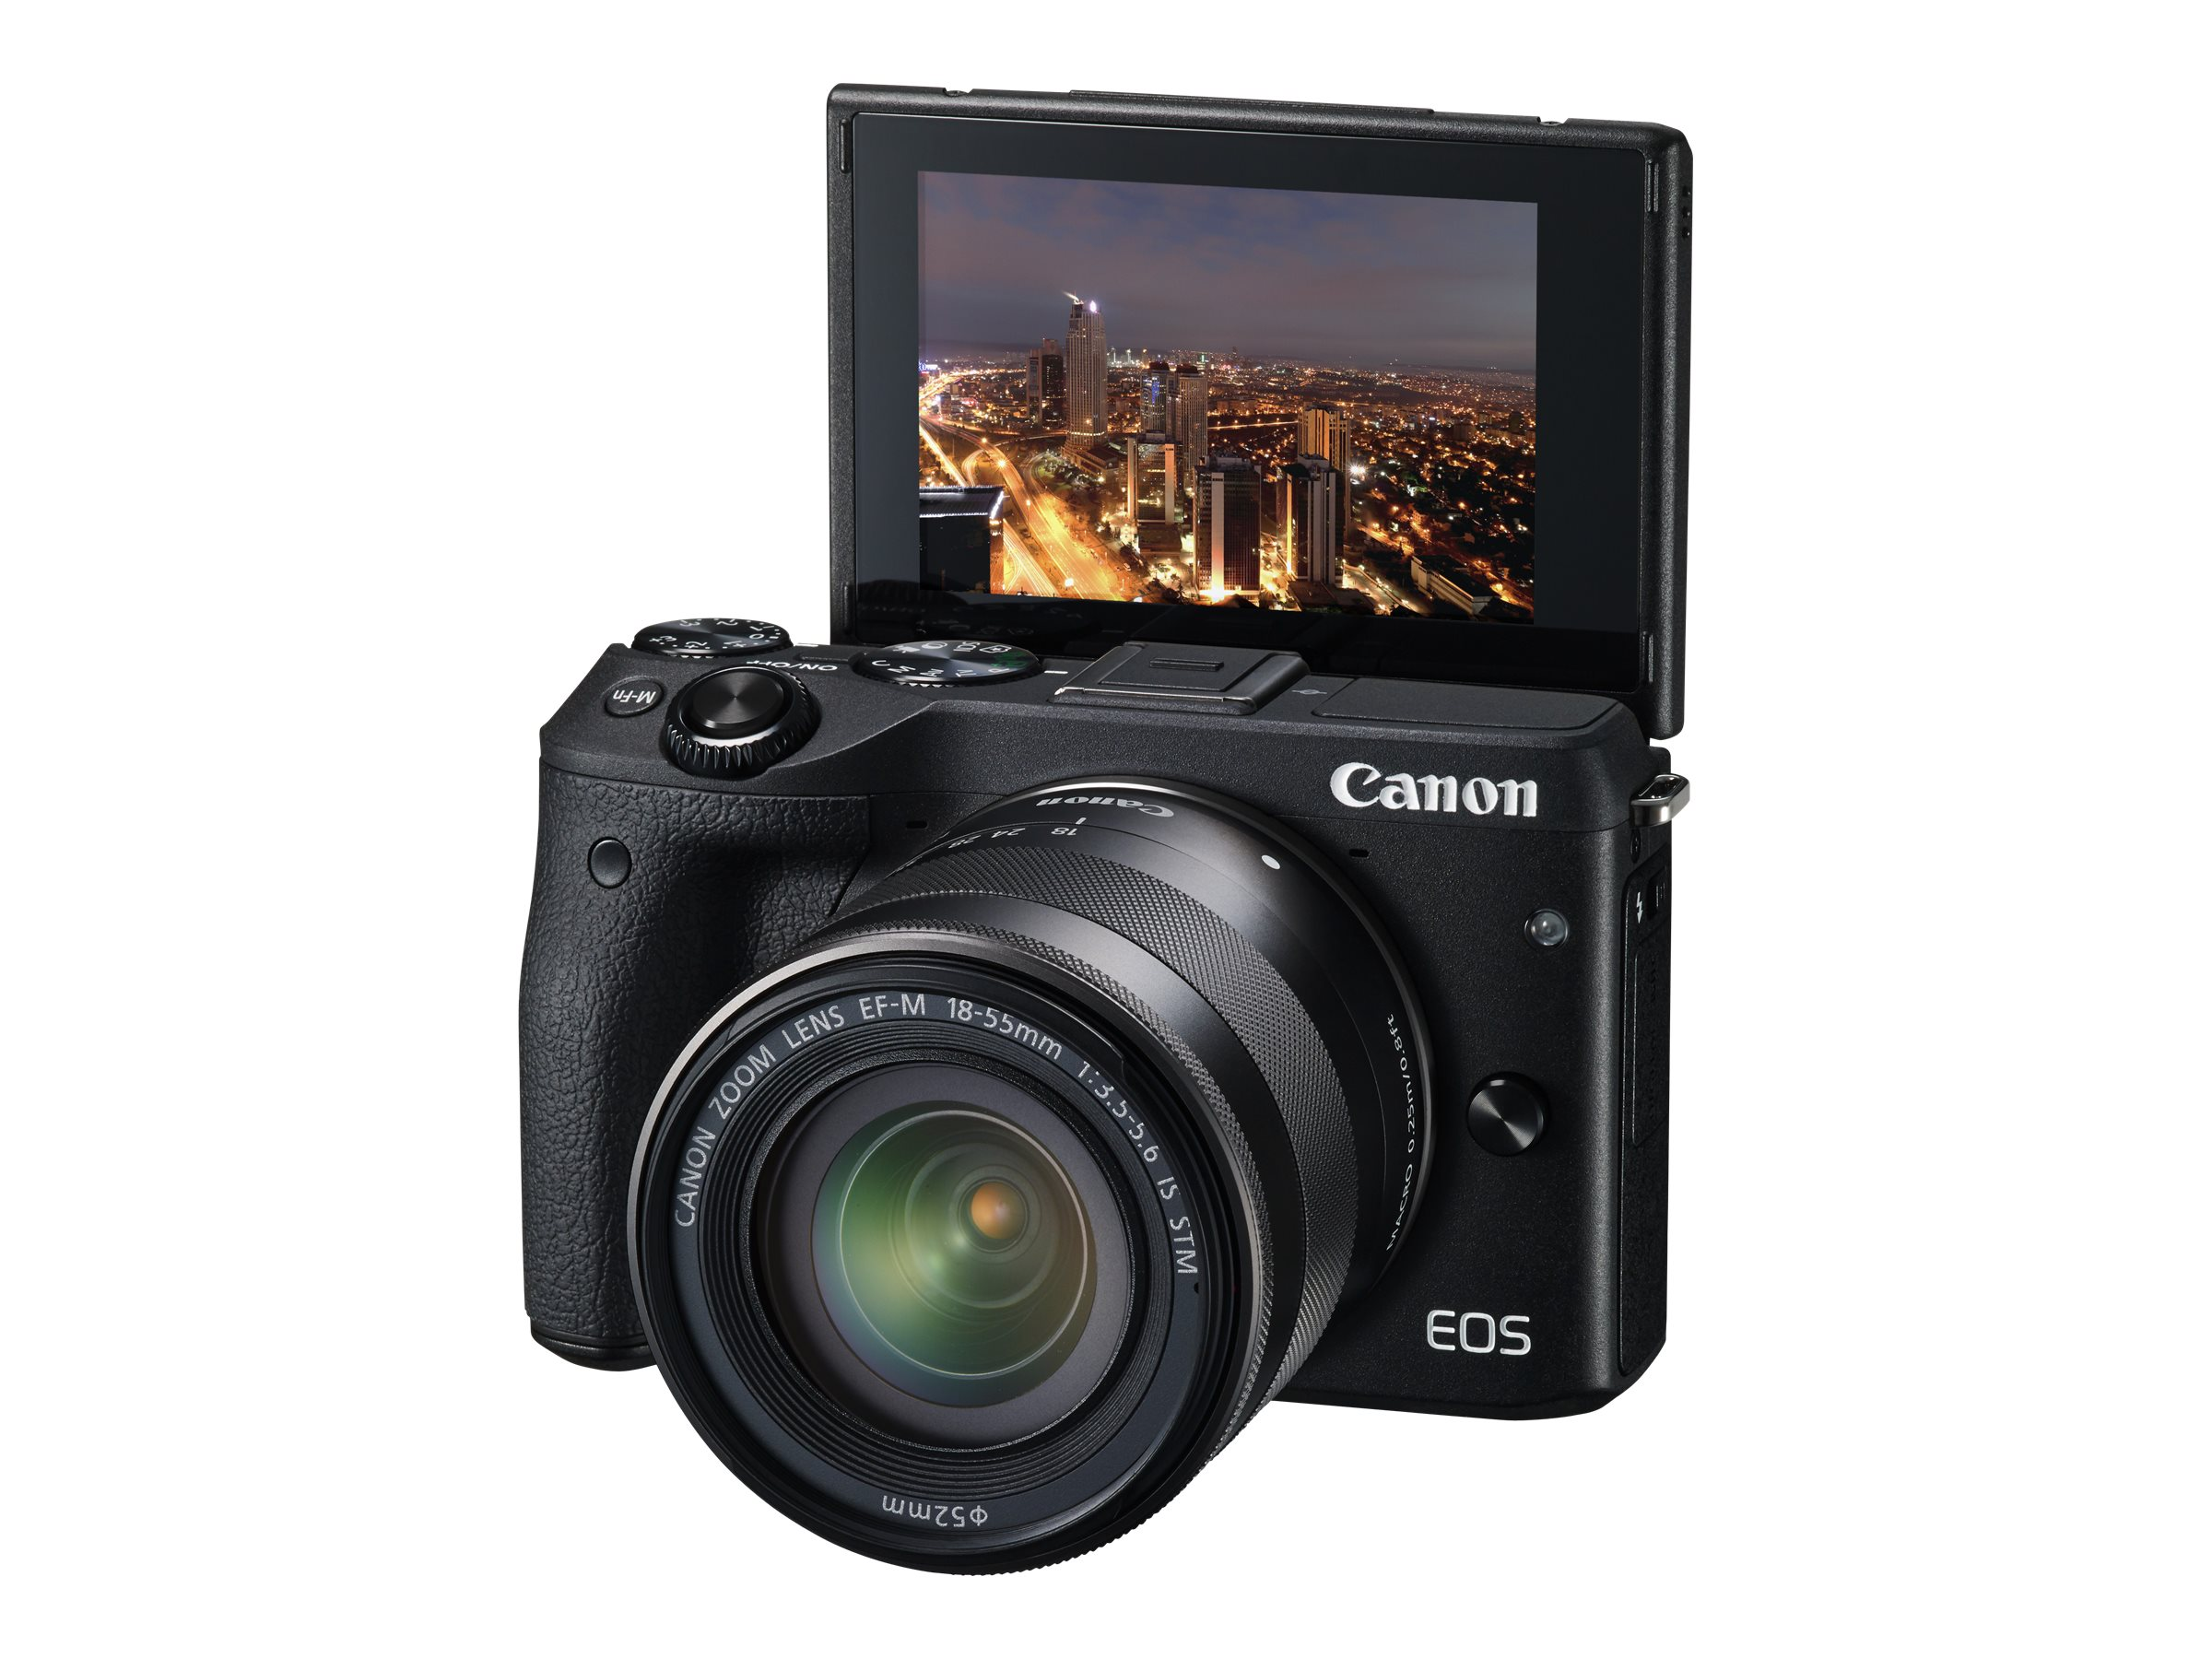 Canon EOS M3 Mirrorless Digital Camera with 18-55mm Lens, Black